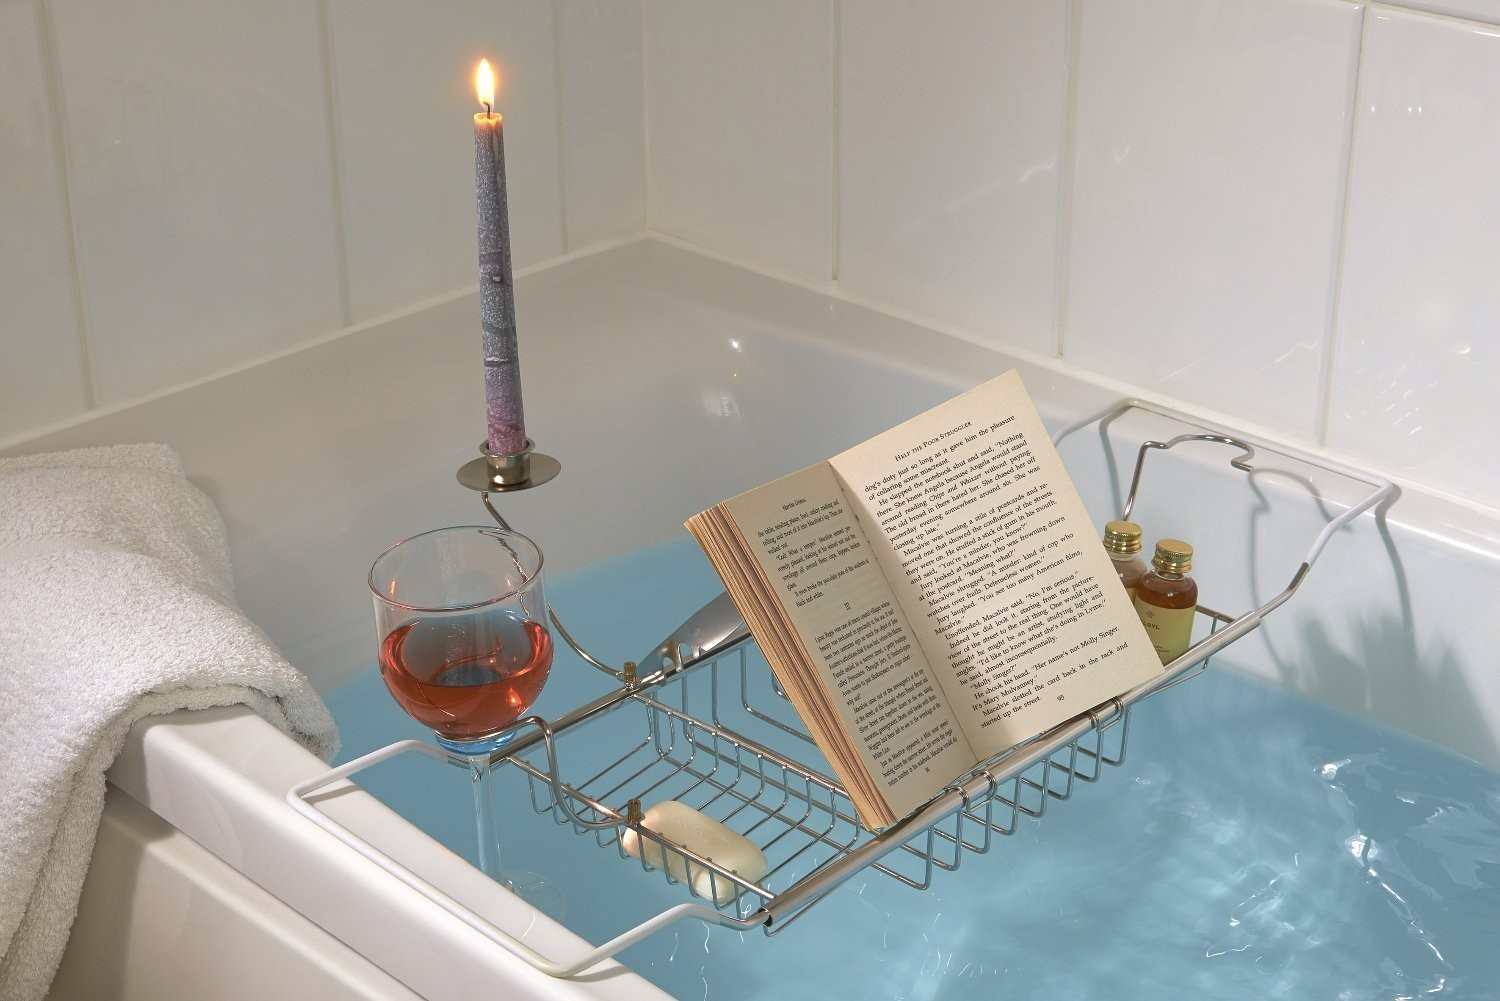 Book Holder For Bathtub - Nemiri